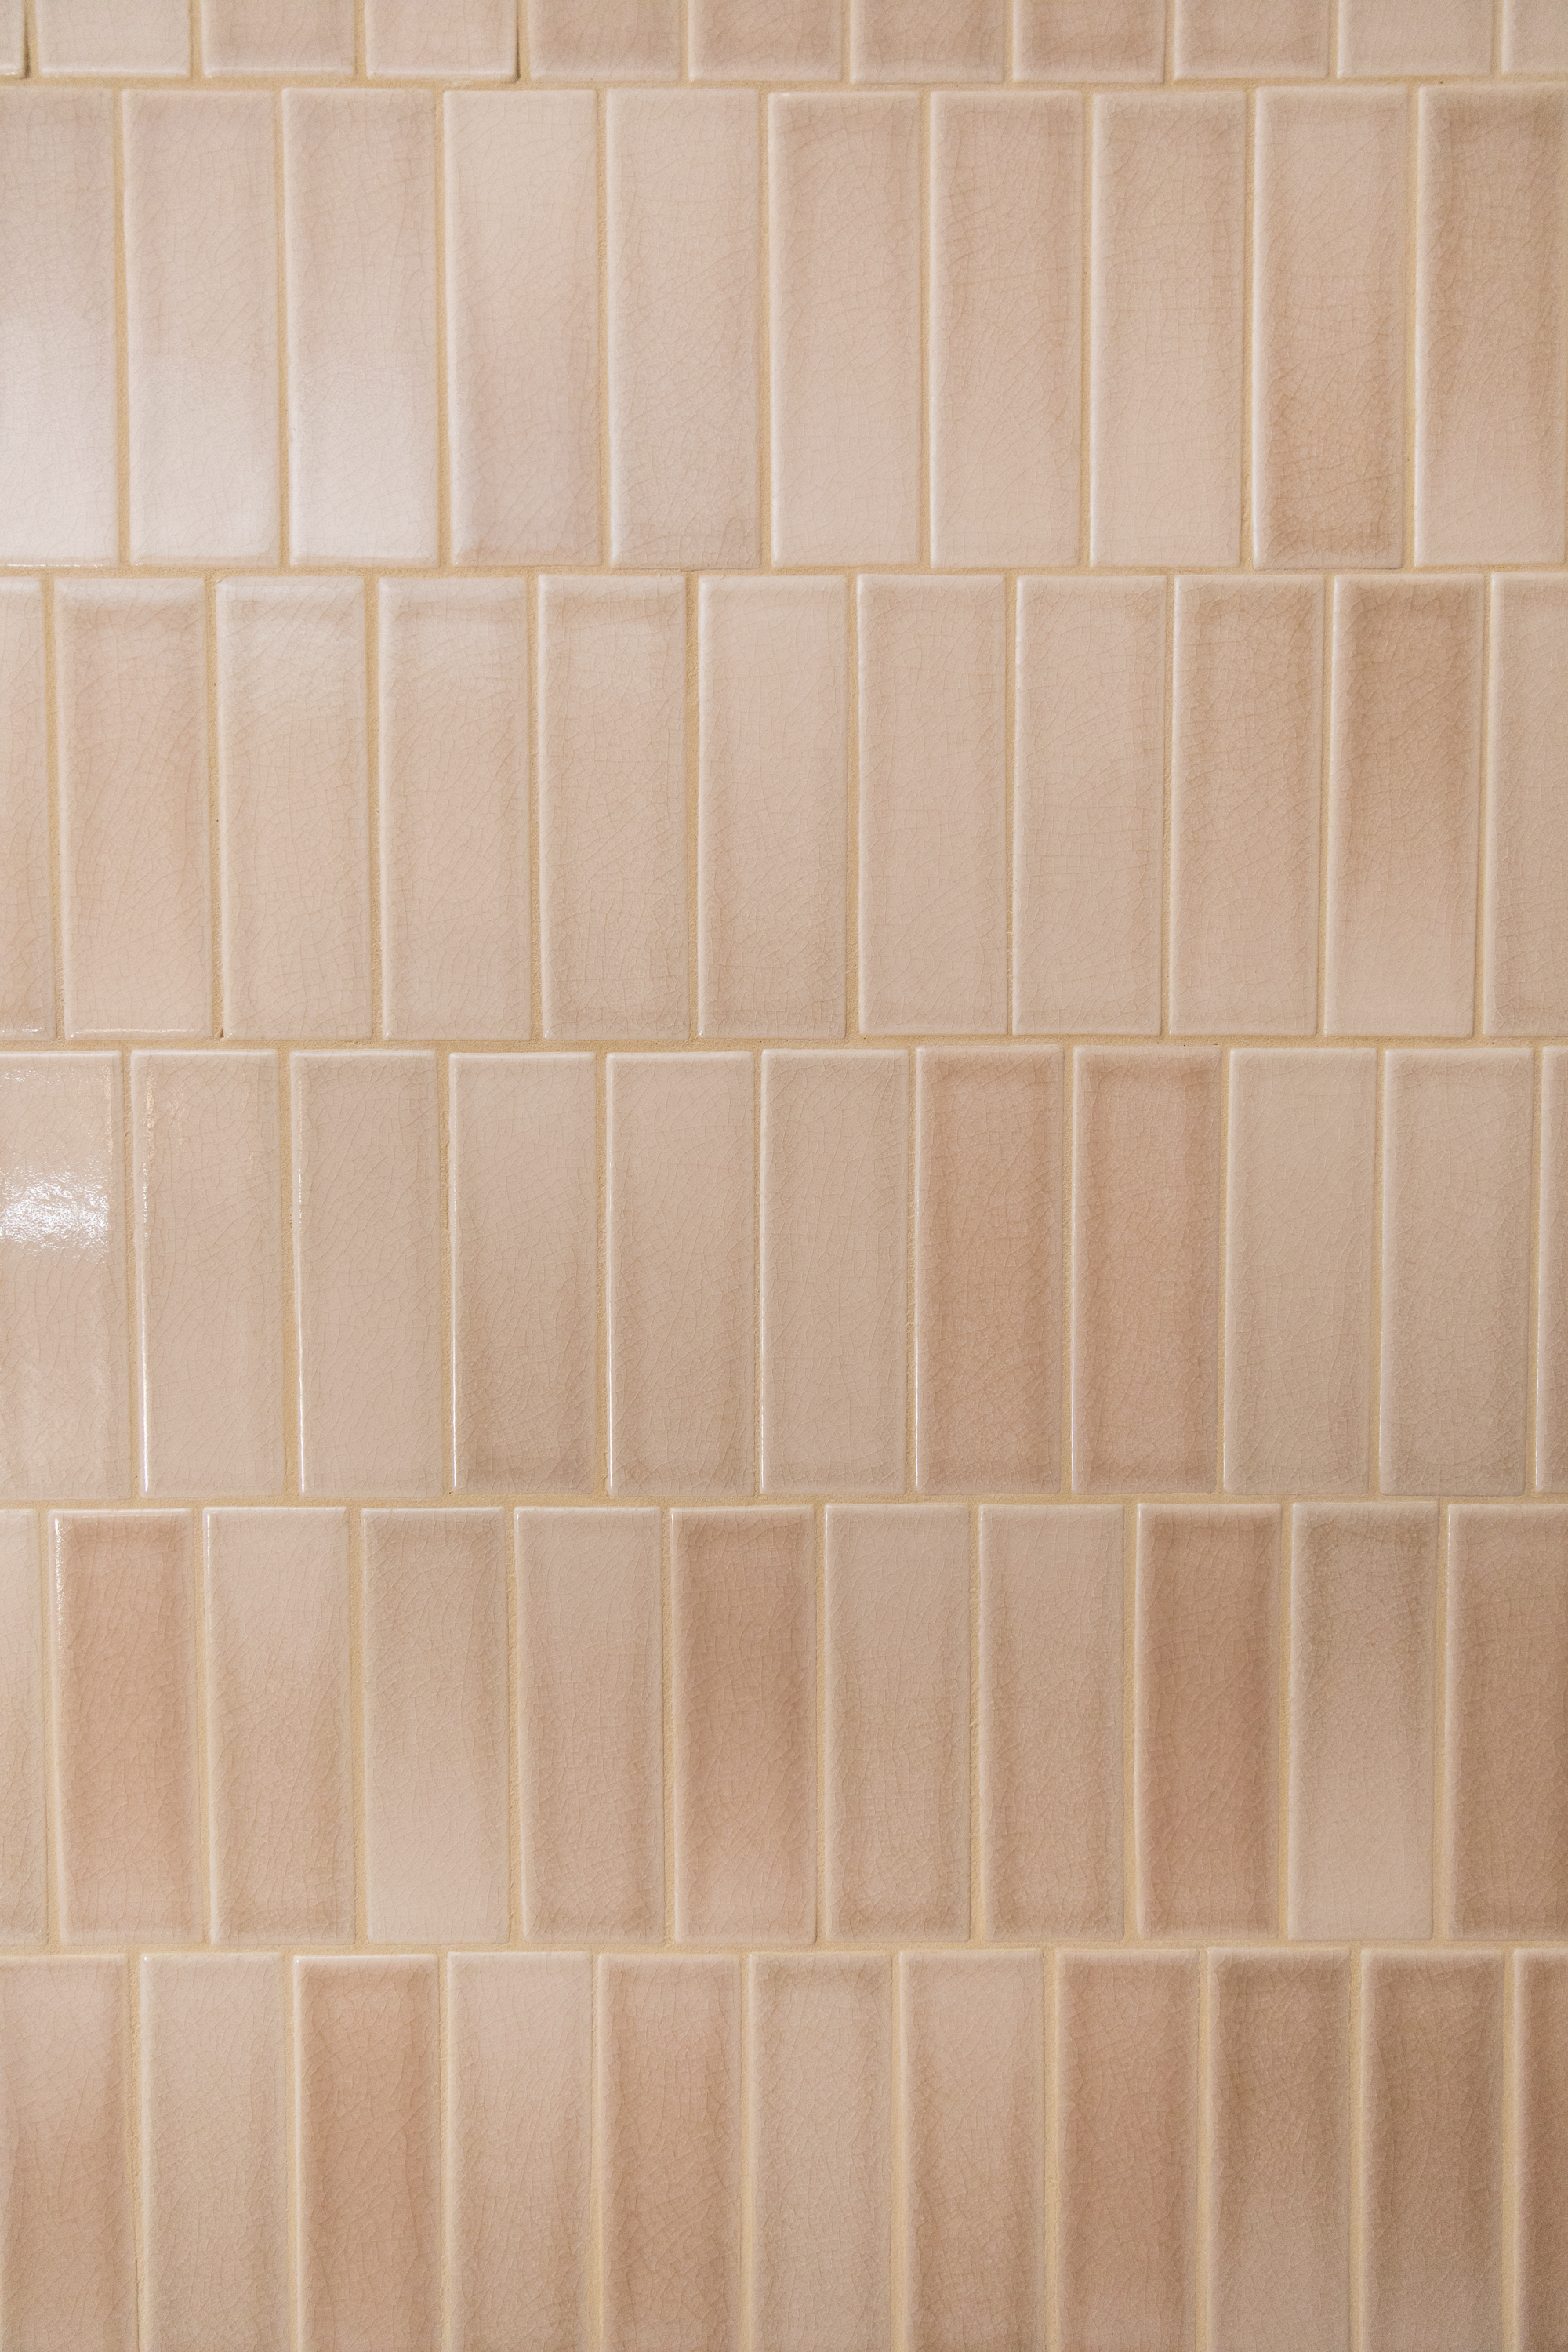 Our glaze Sand Dune has the highest degree of color variation making for a beautiful handmade look.